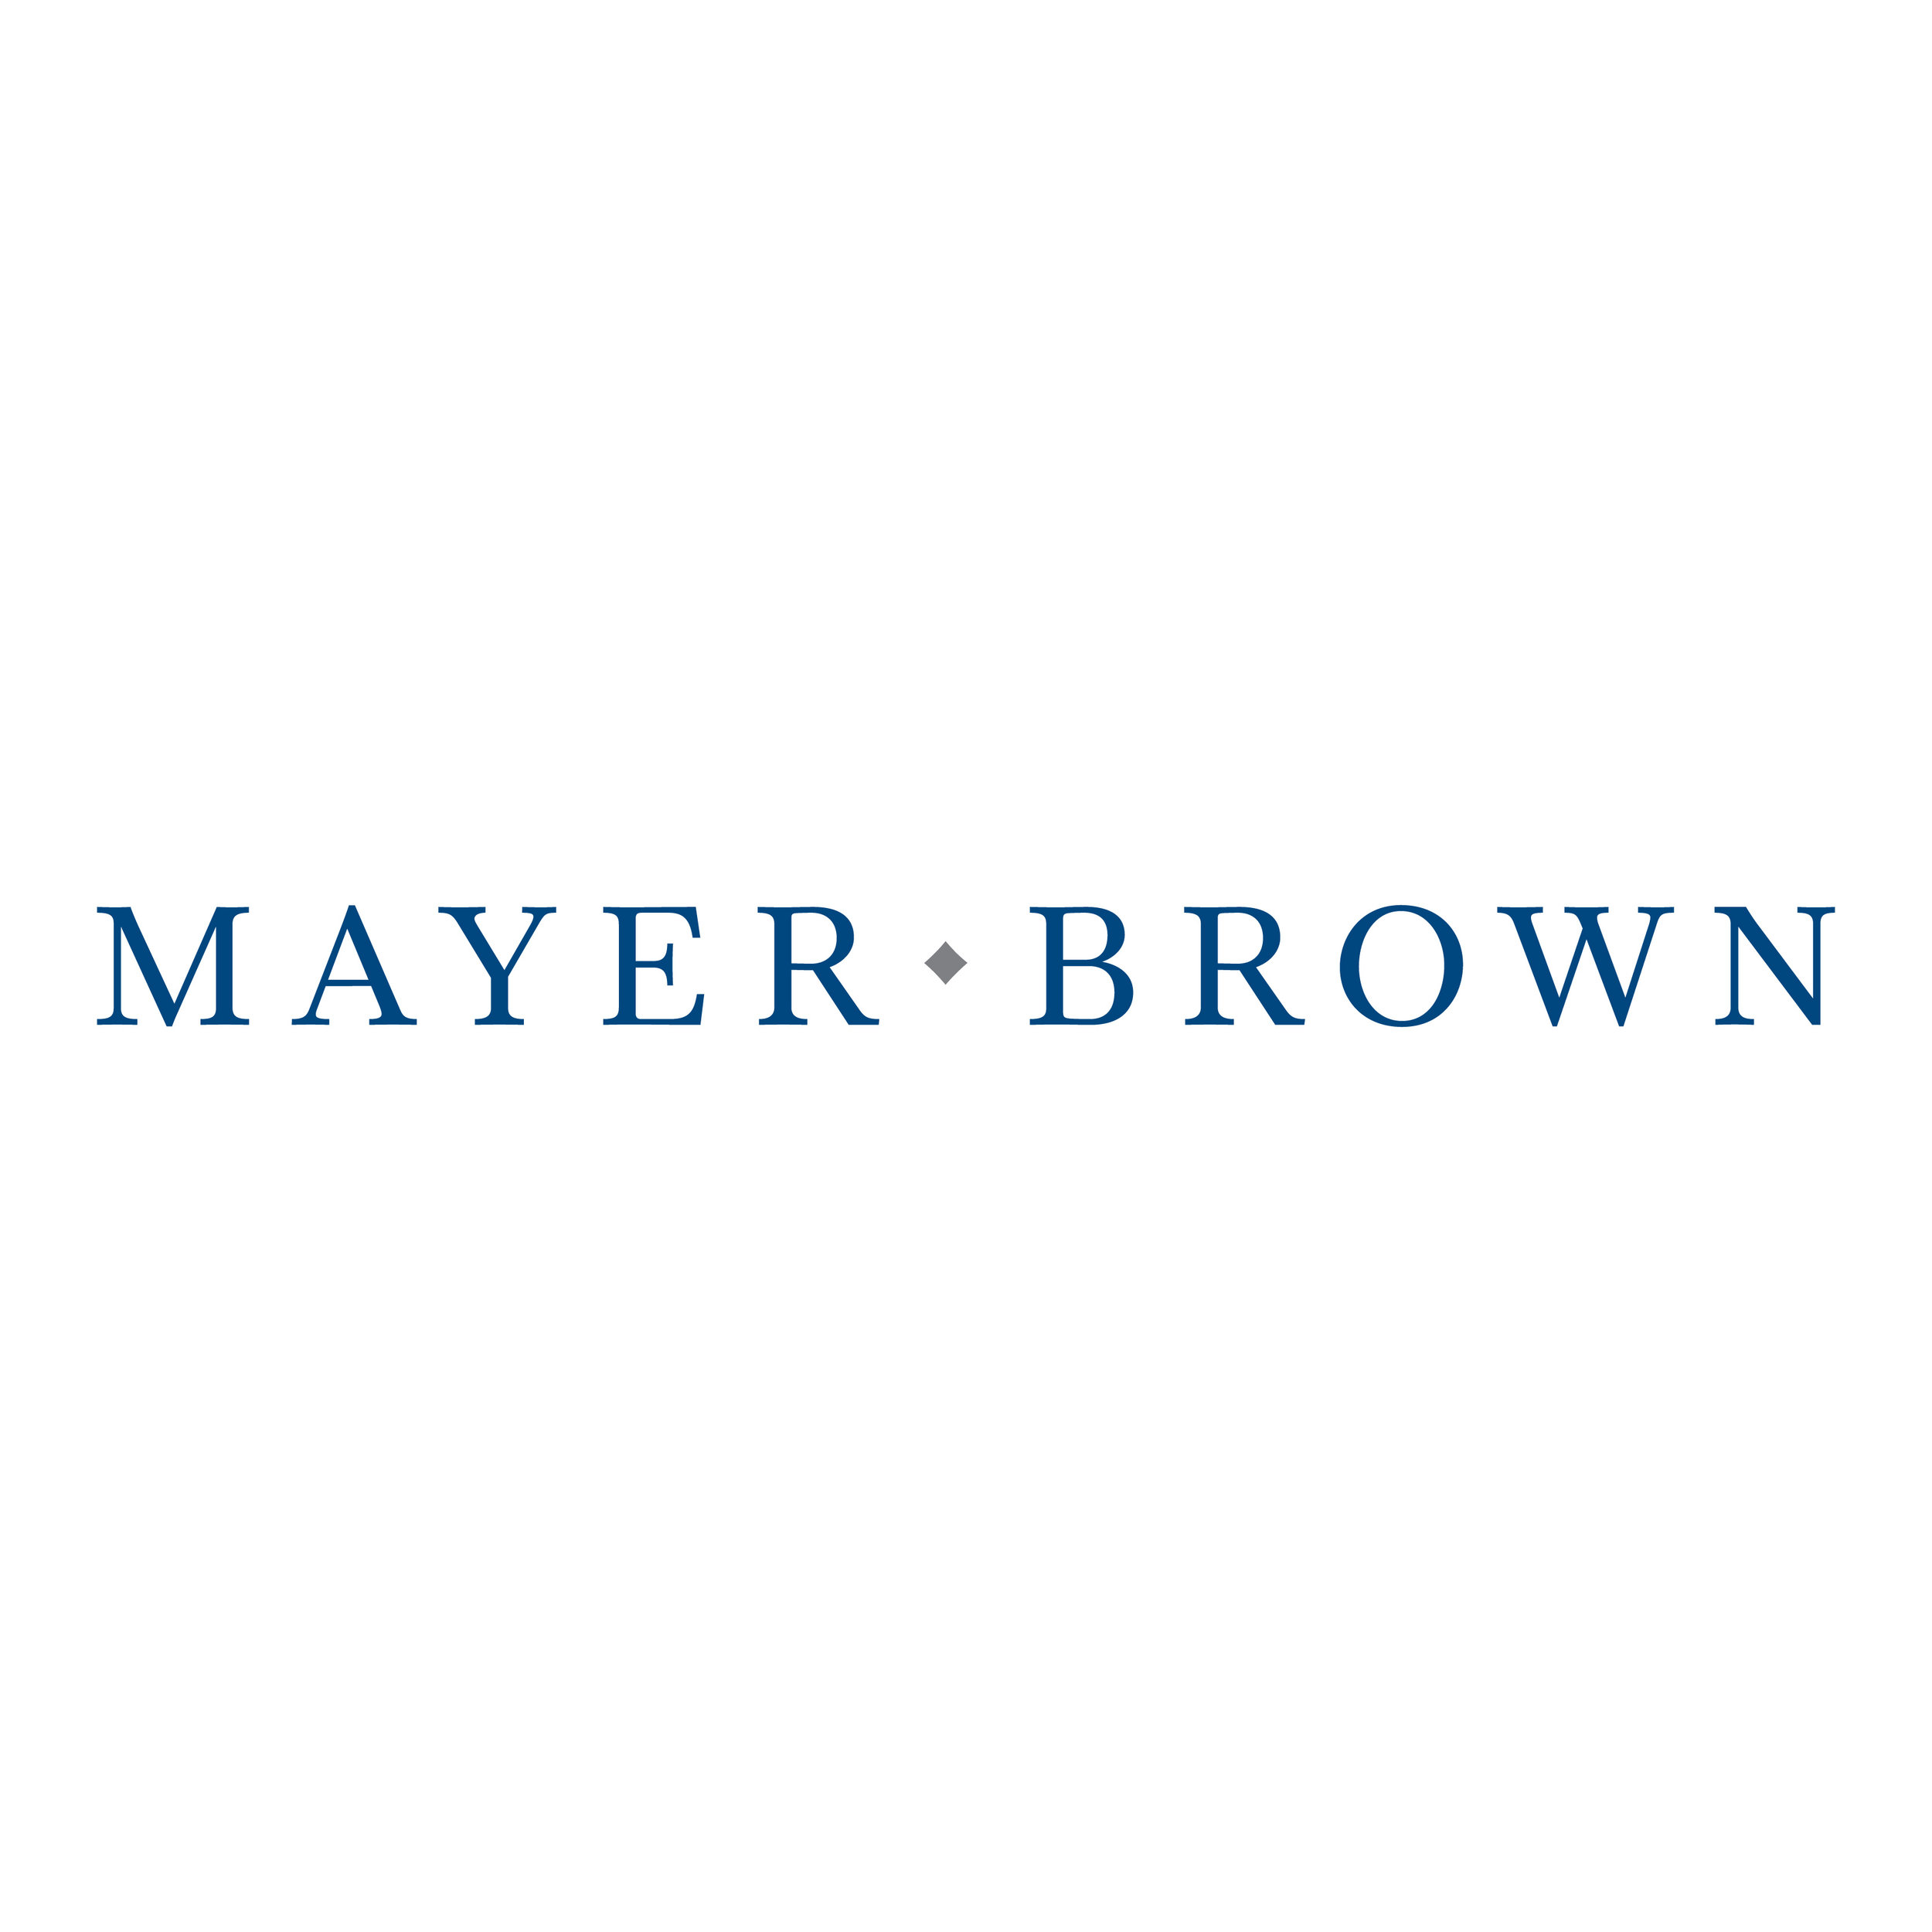 Mayer Brown.jpg